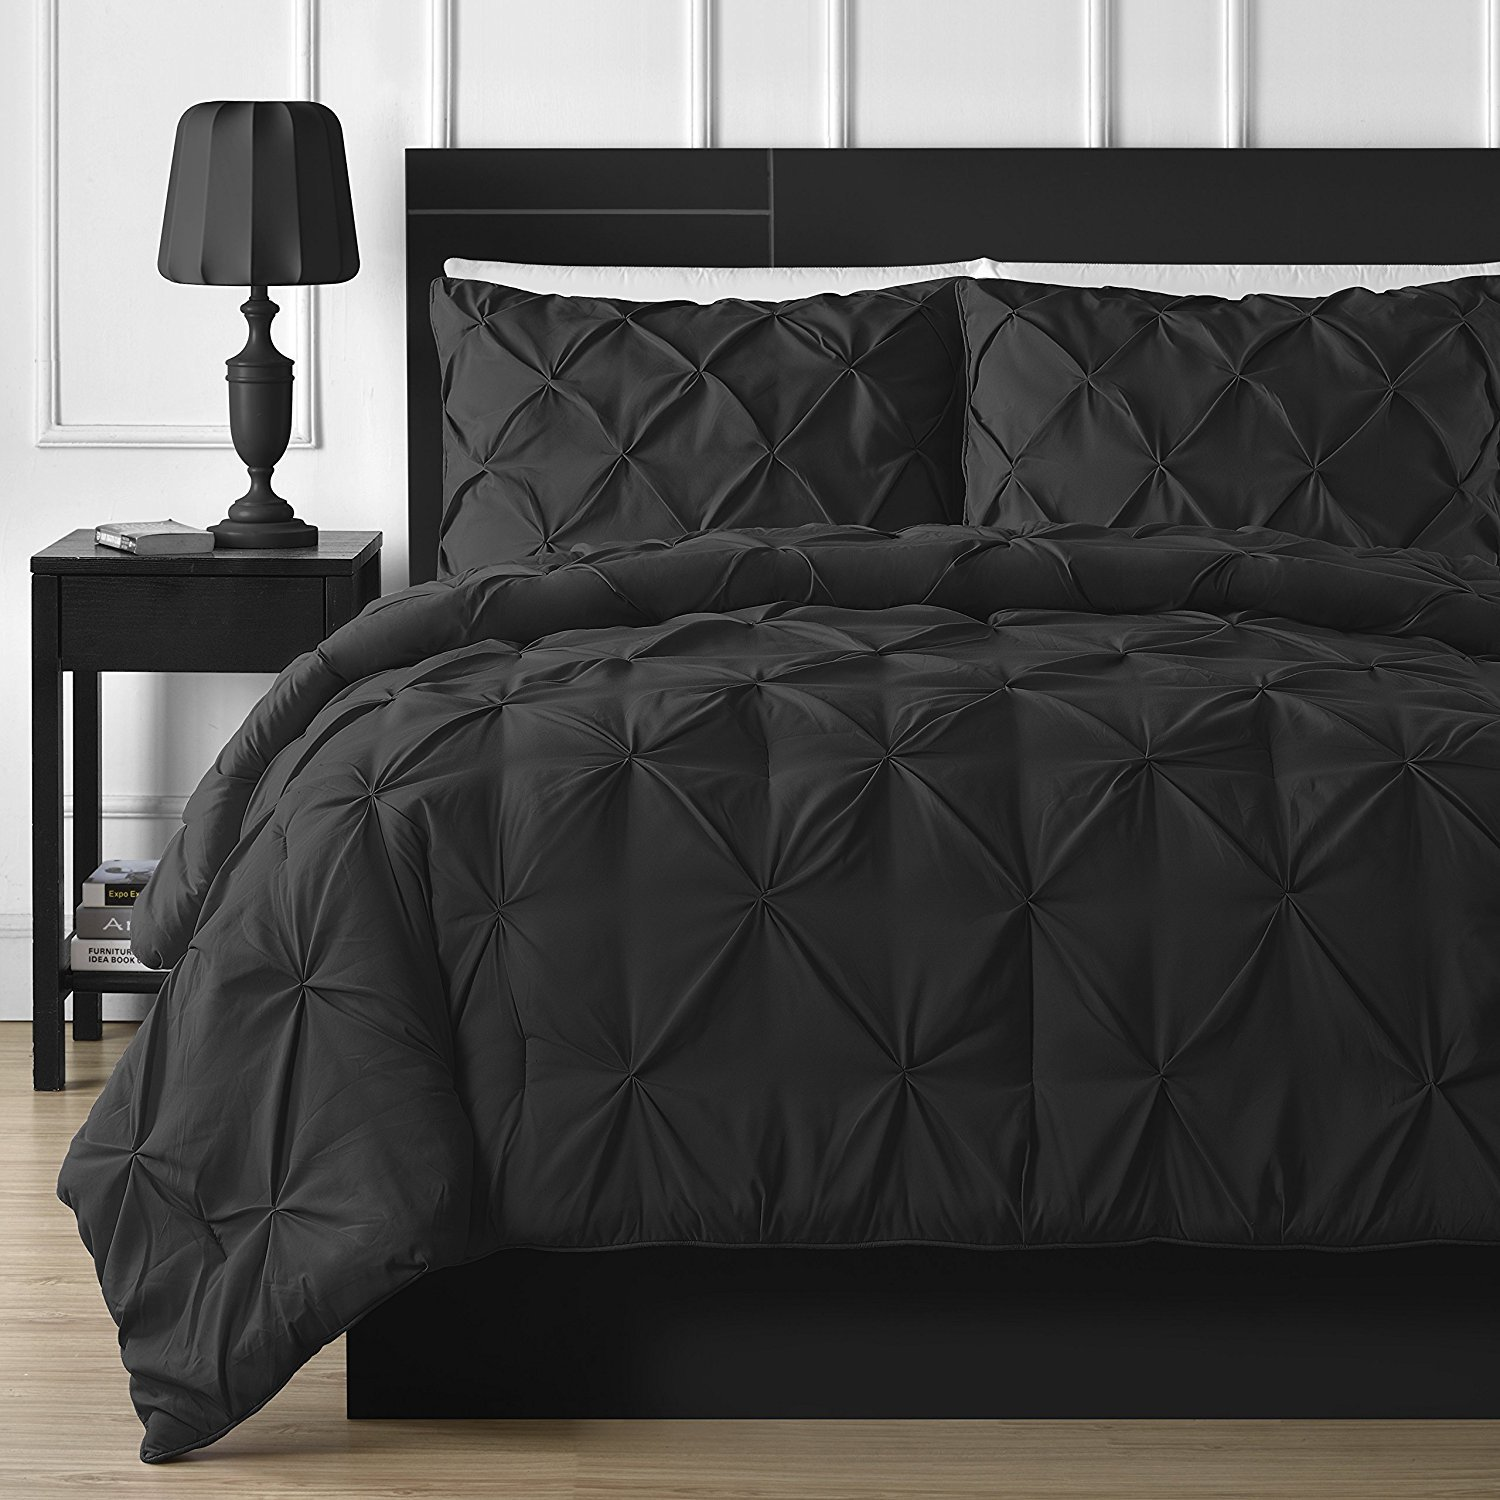 FINE LECHO Soft Luxurious 3-Piece Pinch Pleated Pintuck Decorative Quilt Duvet Cover Set Highest Quality Egyptian Cotton 800 Thread Count Comforter Cover (King/Cal-King, Black